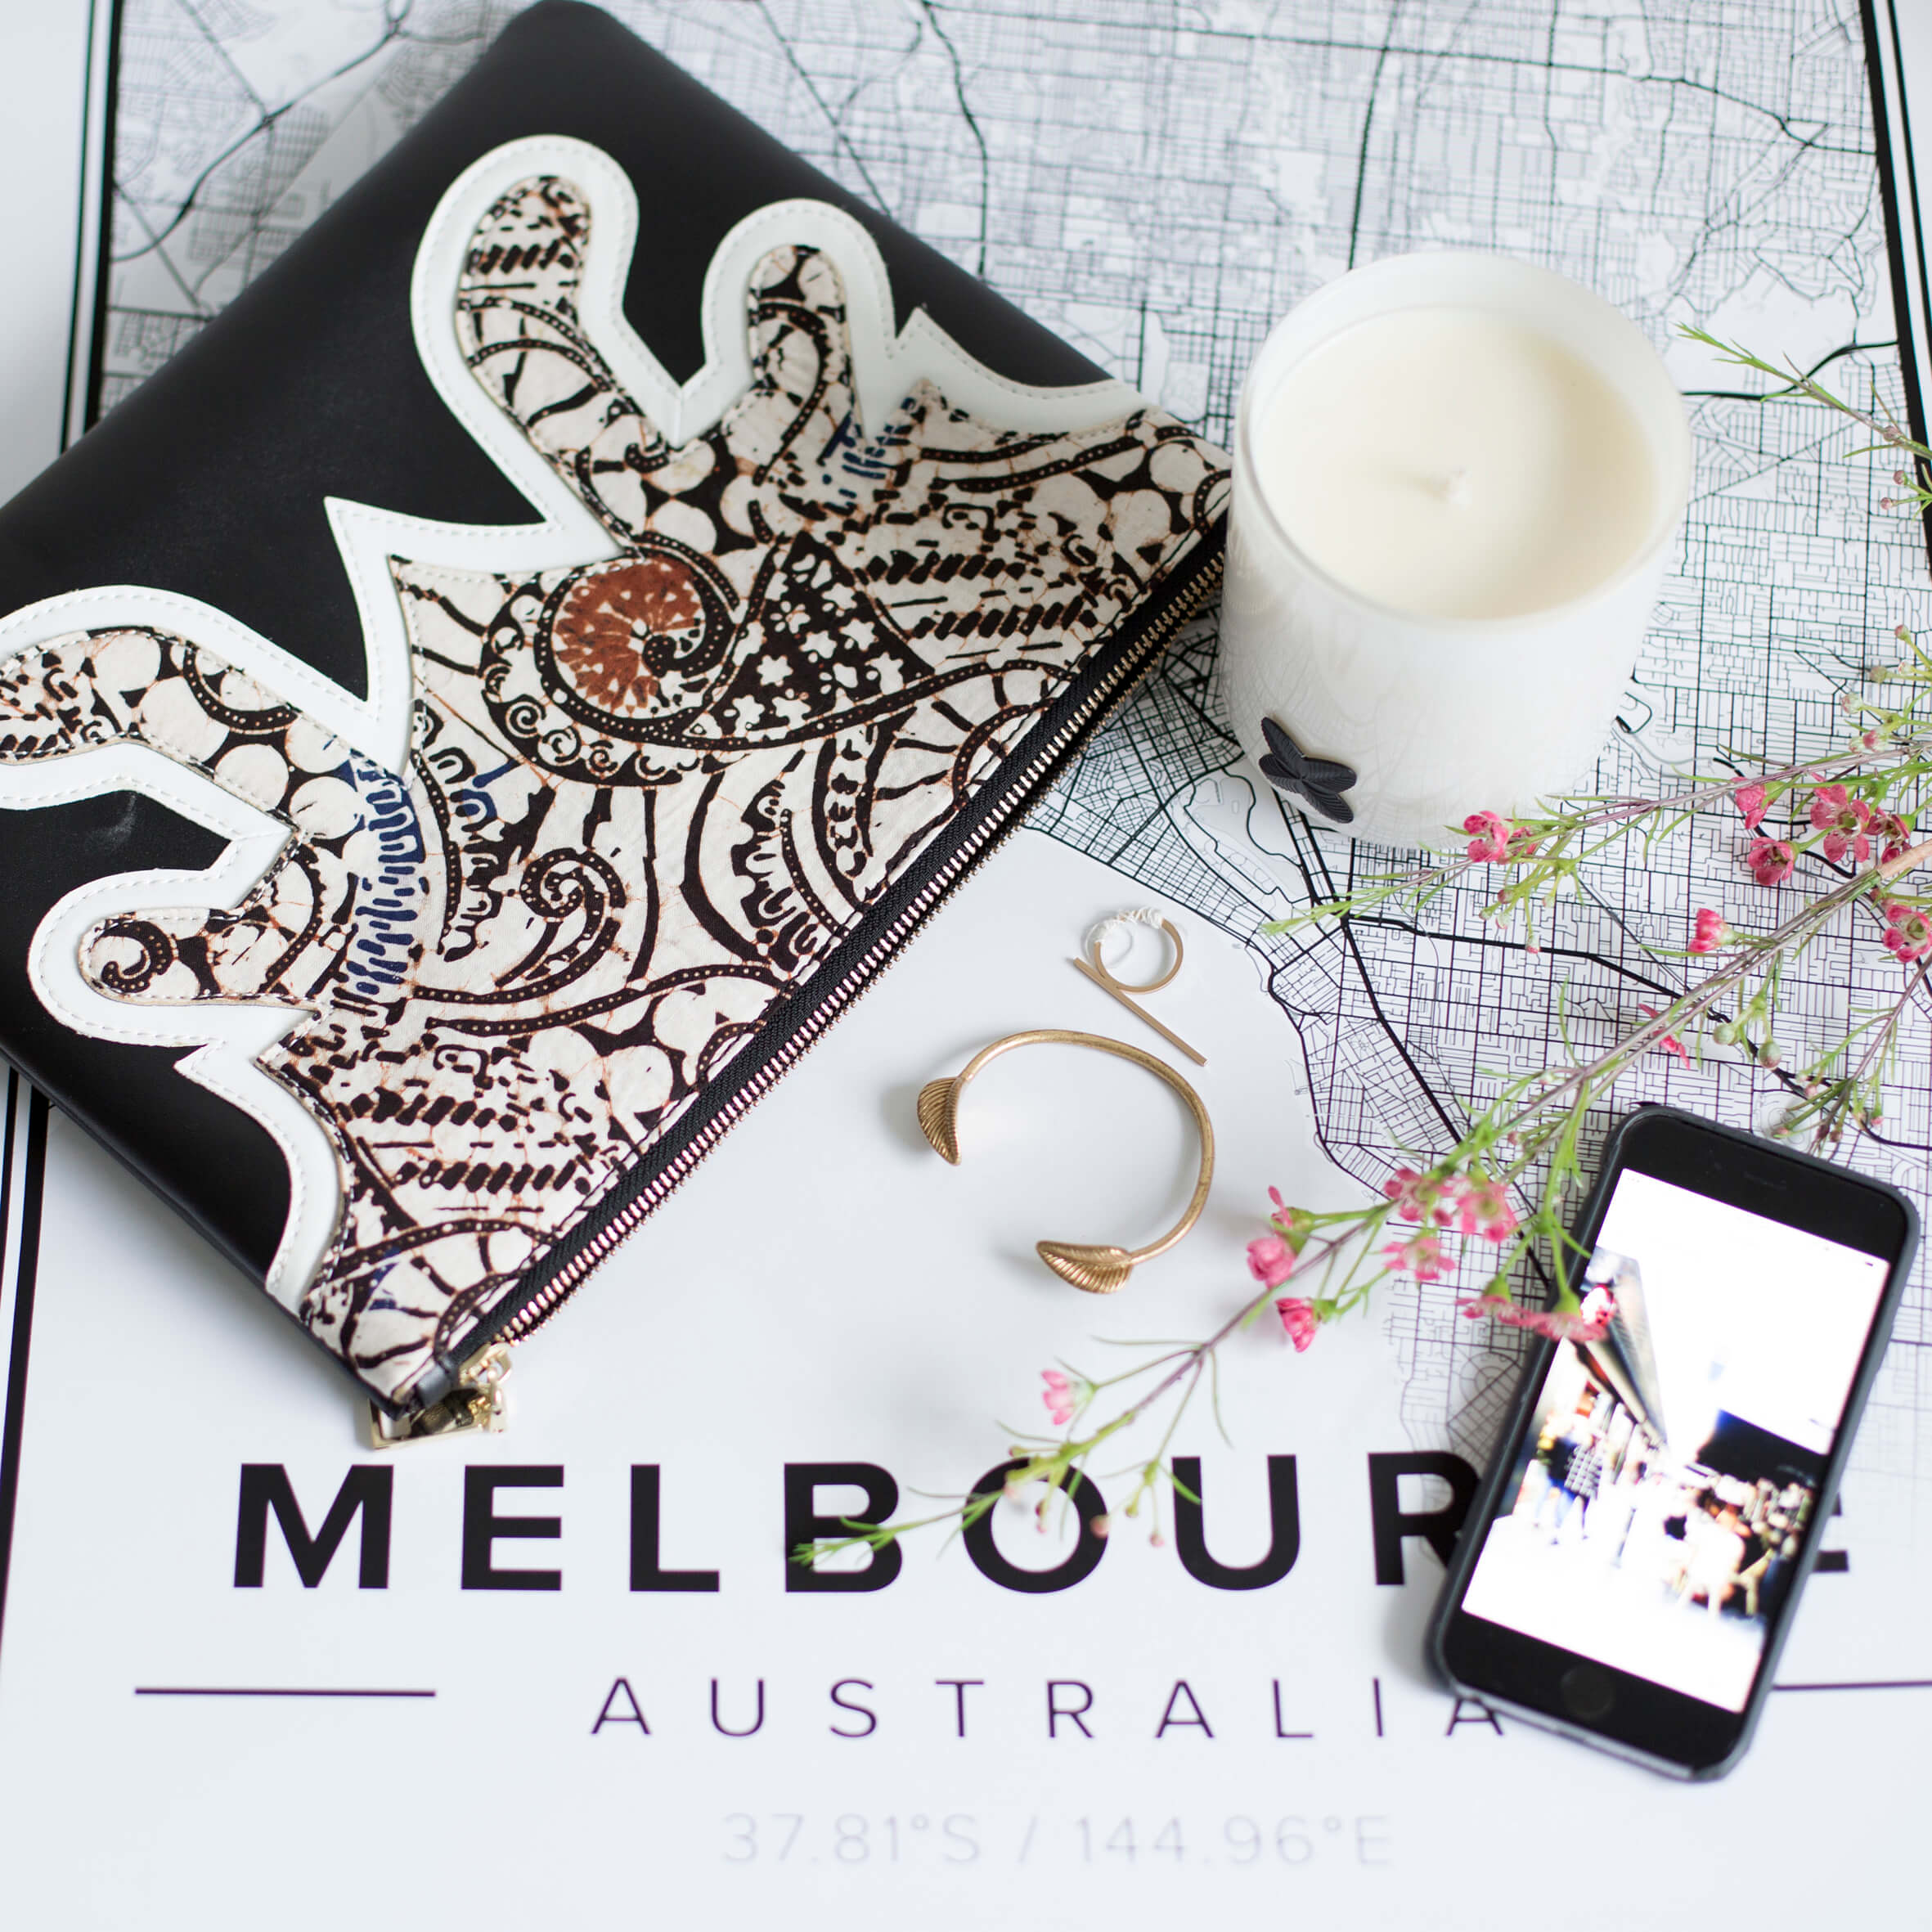 Our favourite clutch on top of a map of Melbourne.